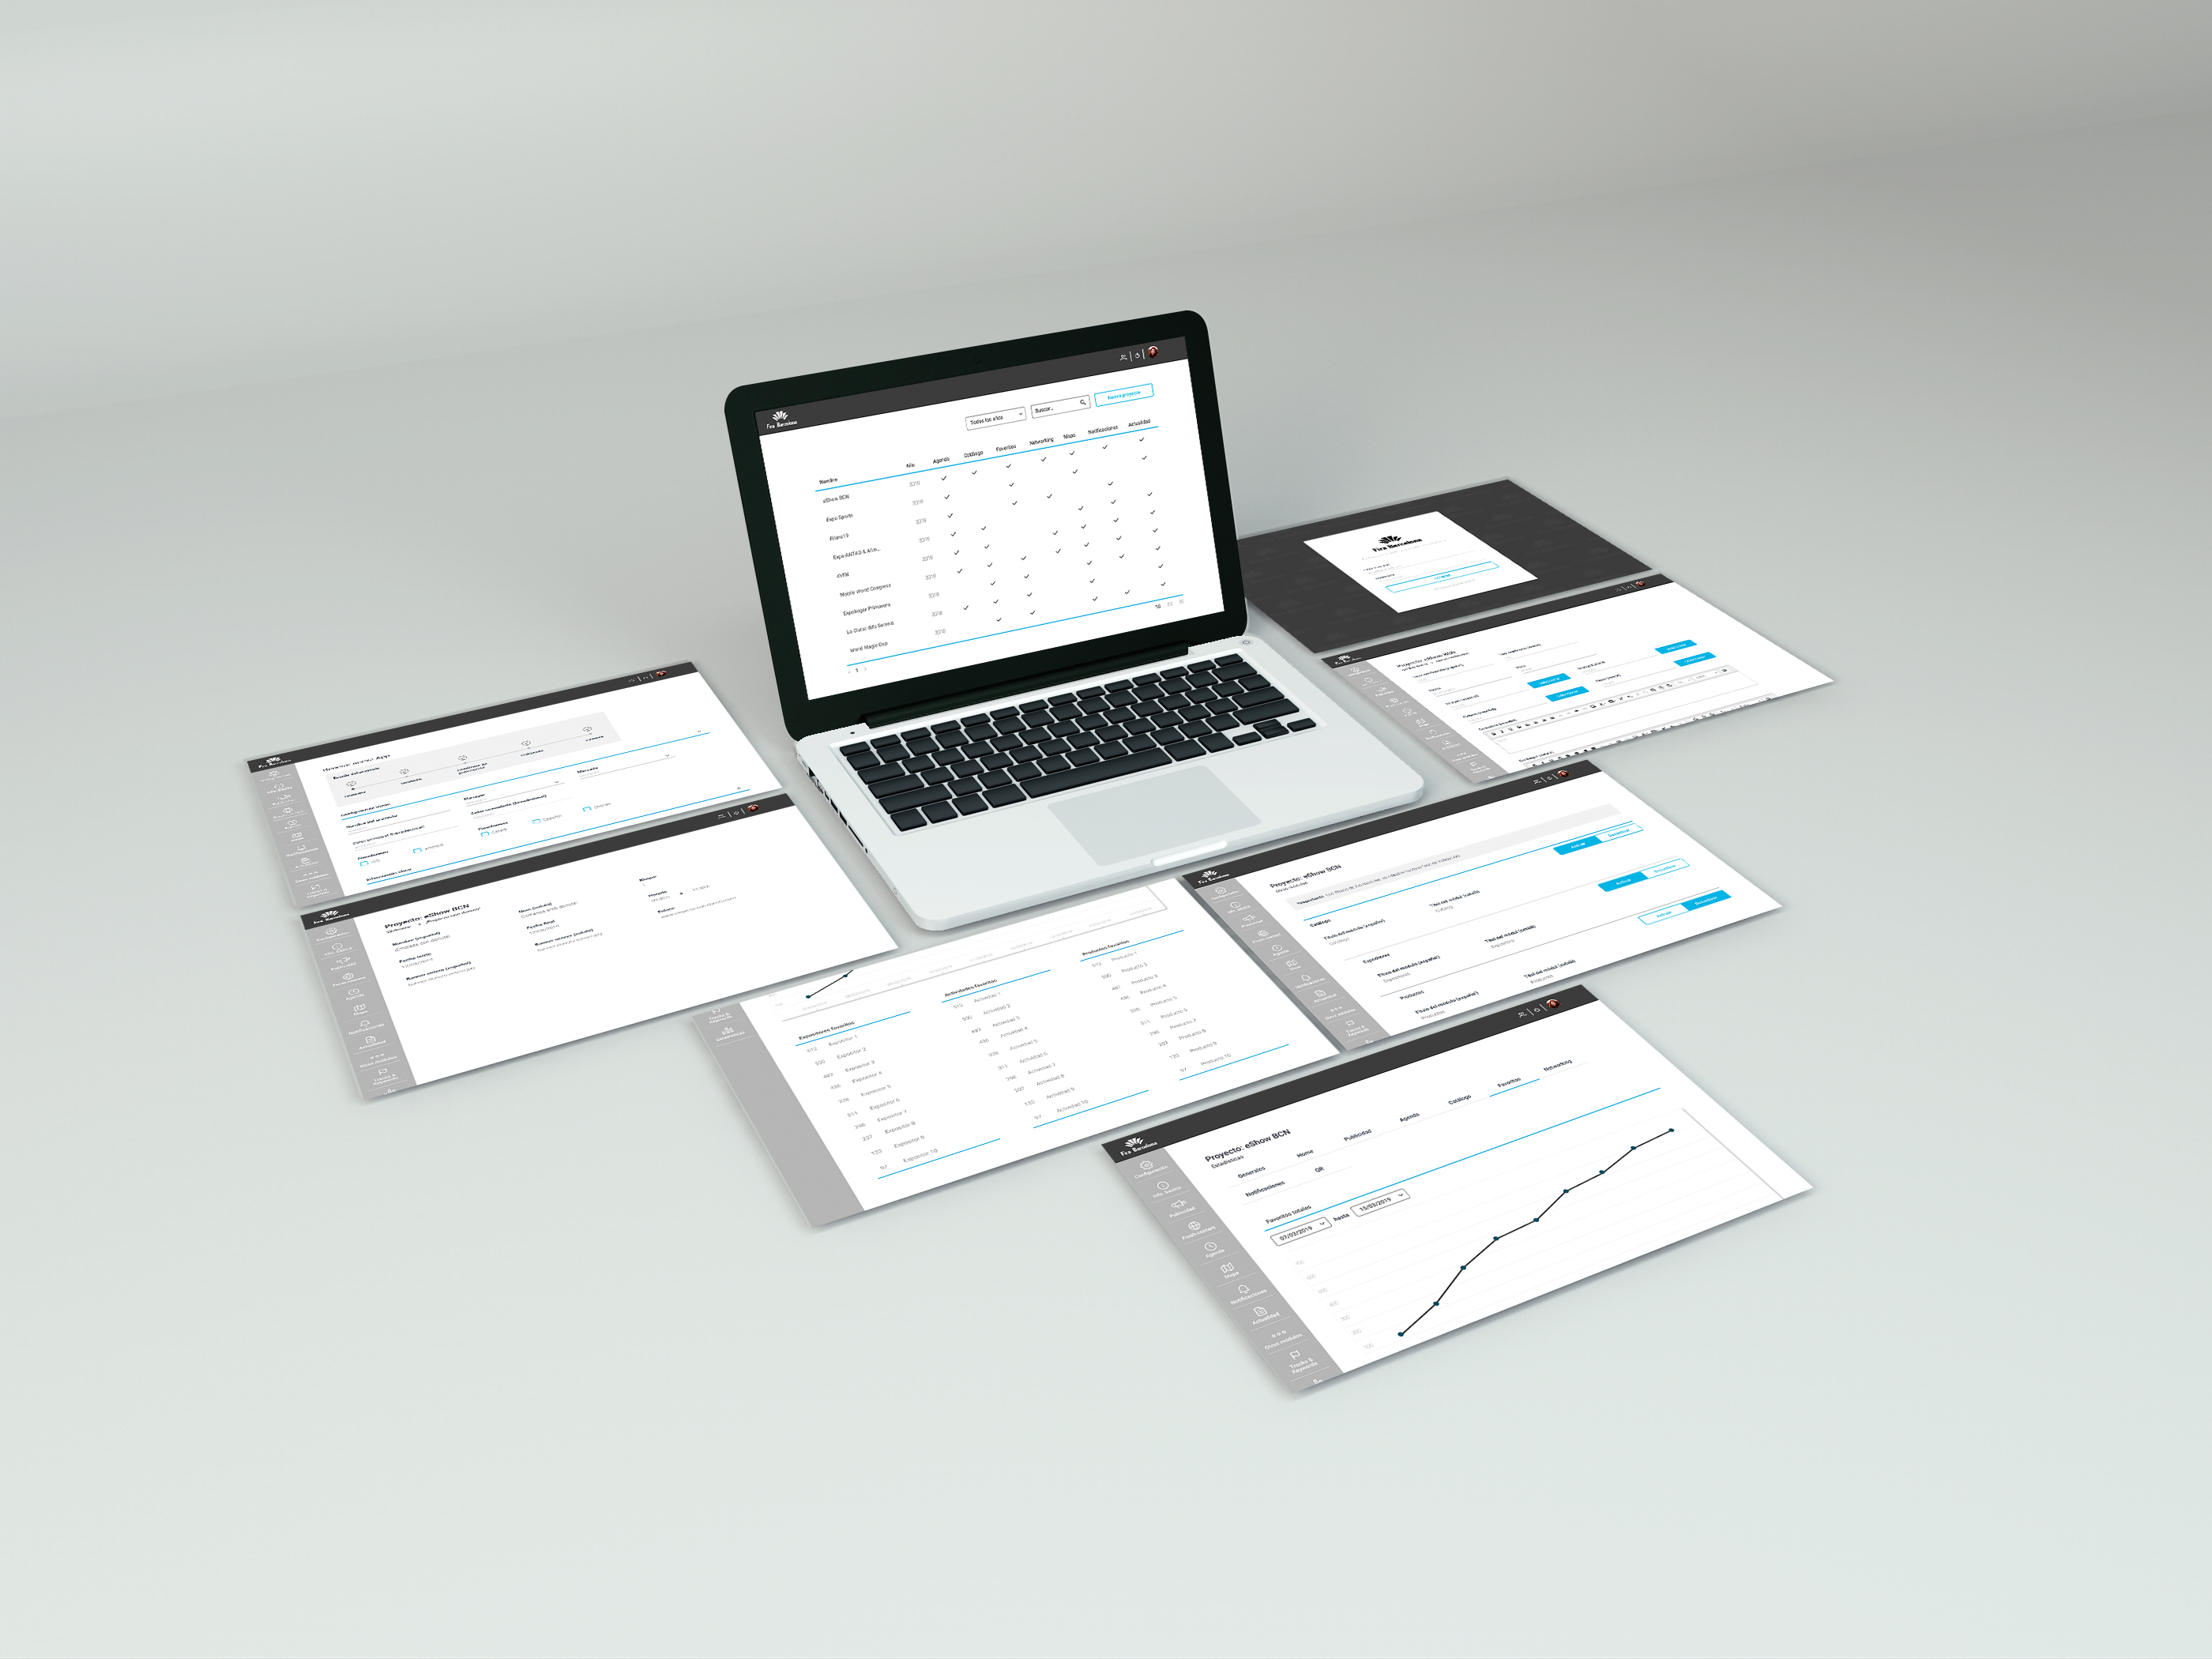 mockup-web-software-apps-fira-barcelona